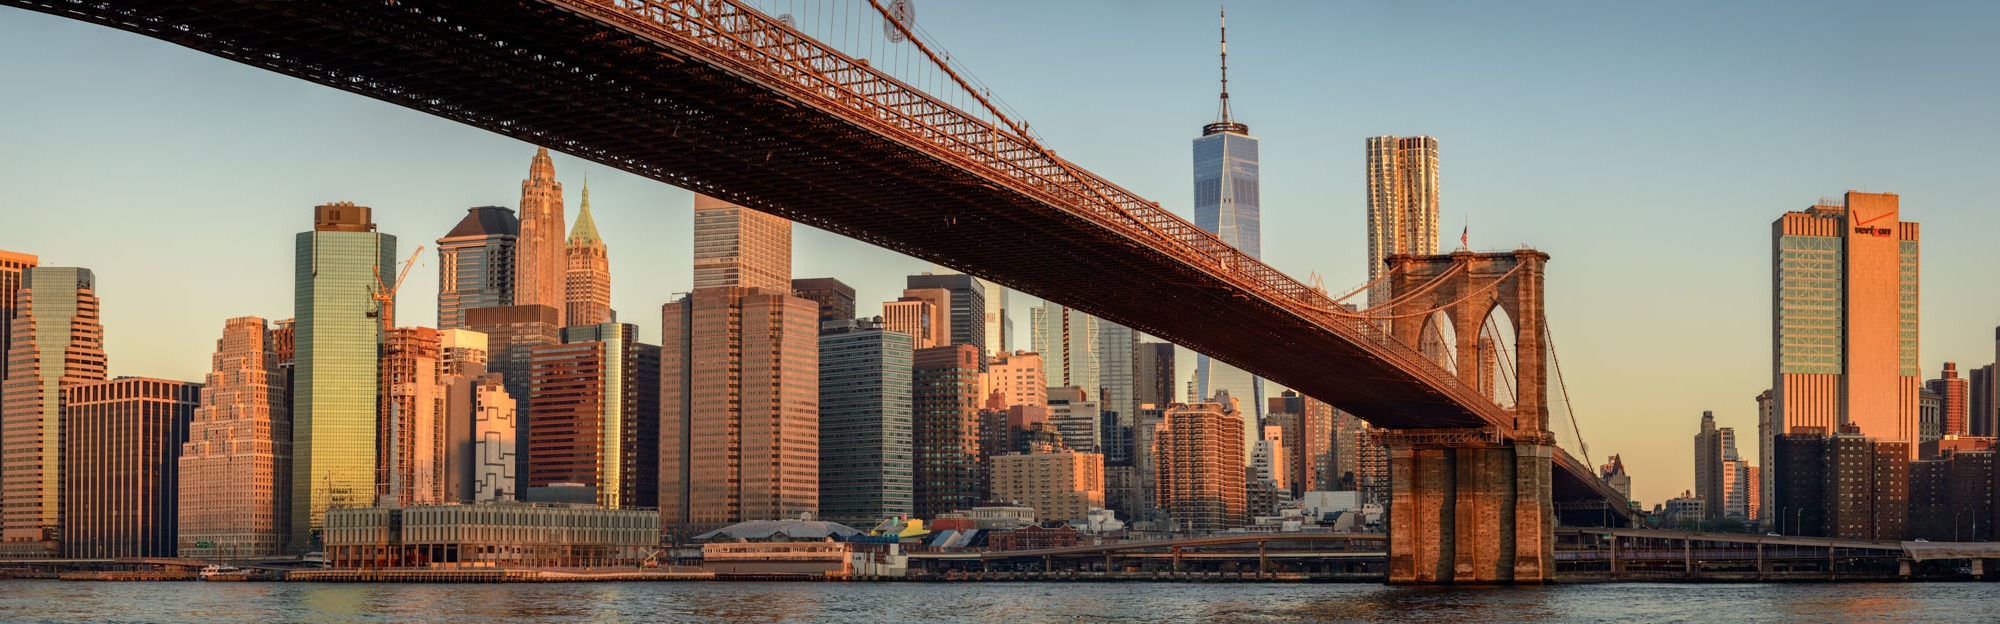 Early morning light on the Brooklyn Bridge and Lower Manhattan